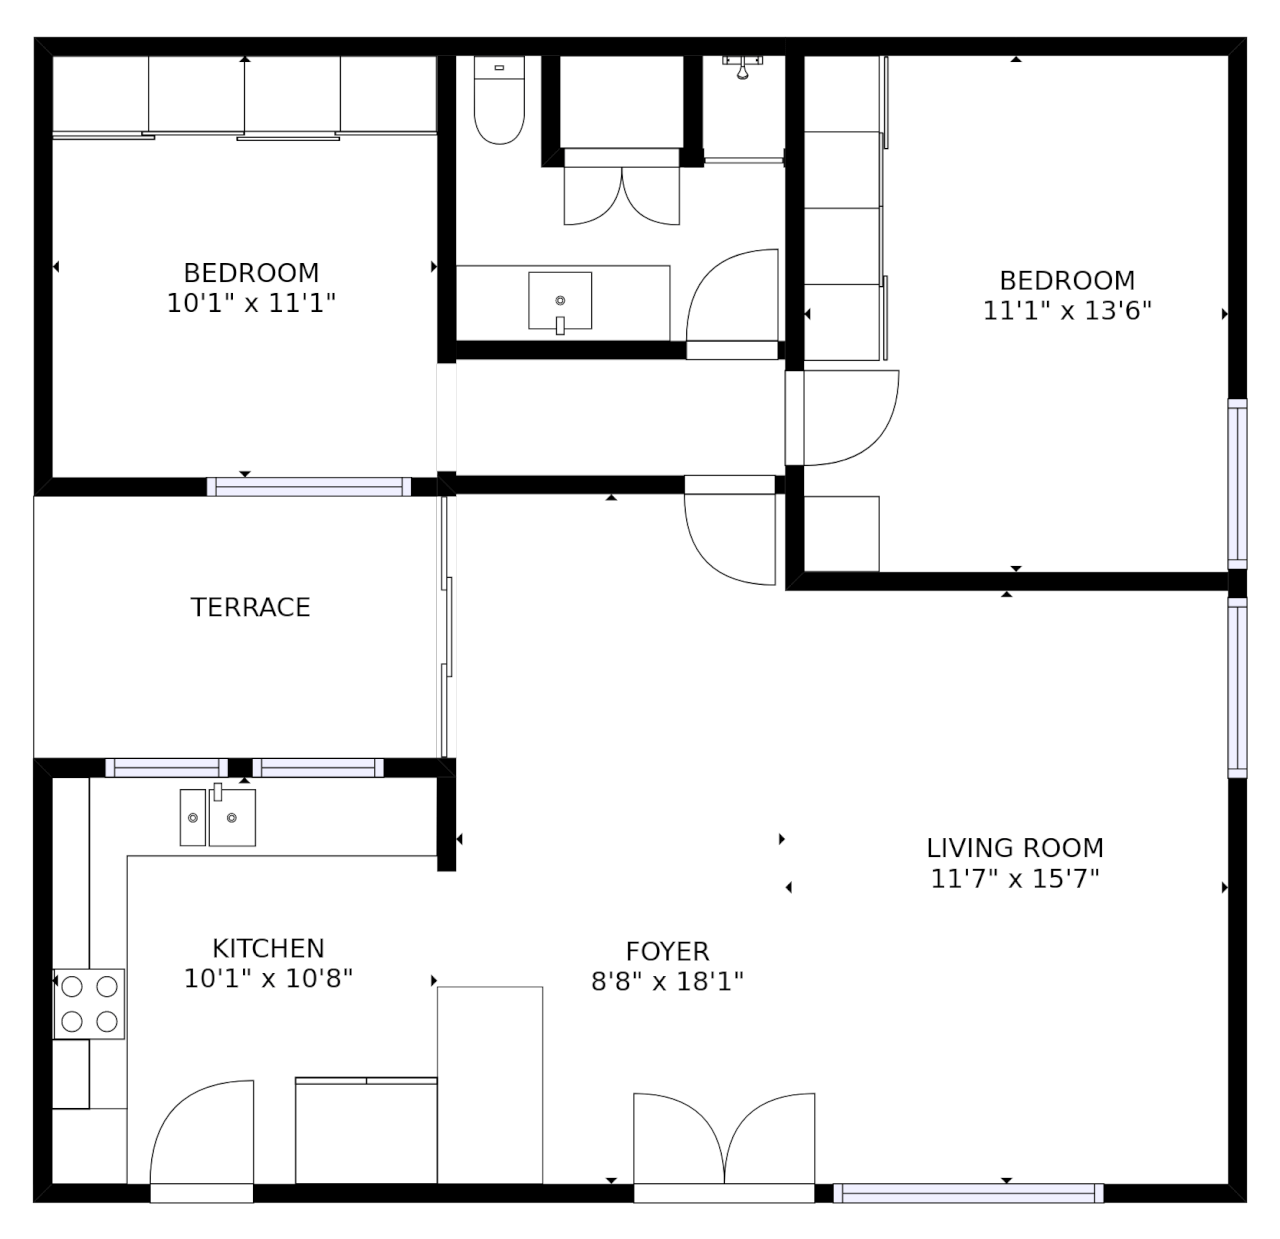 stylish and simple floorplans